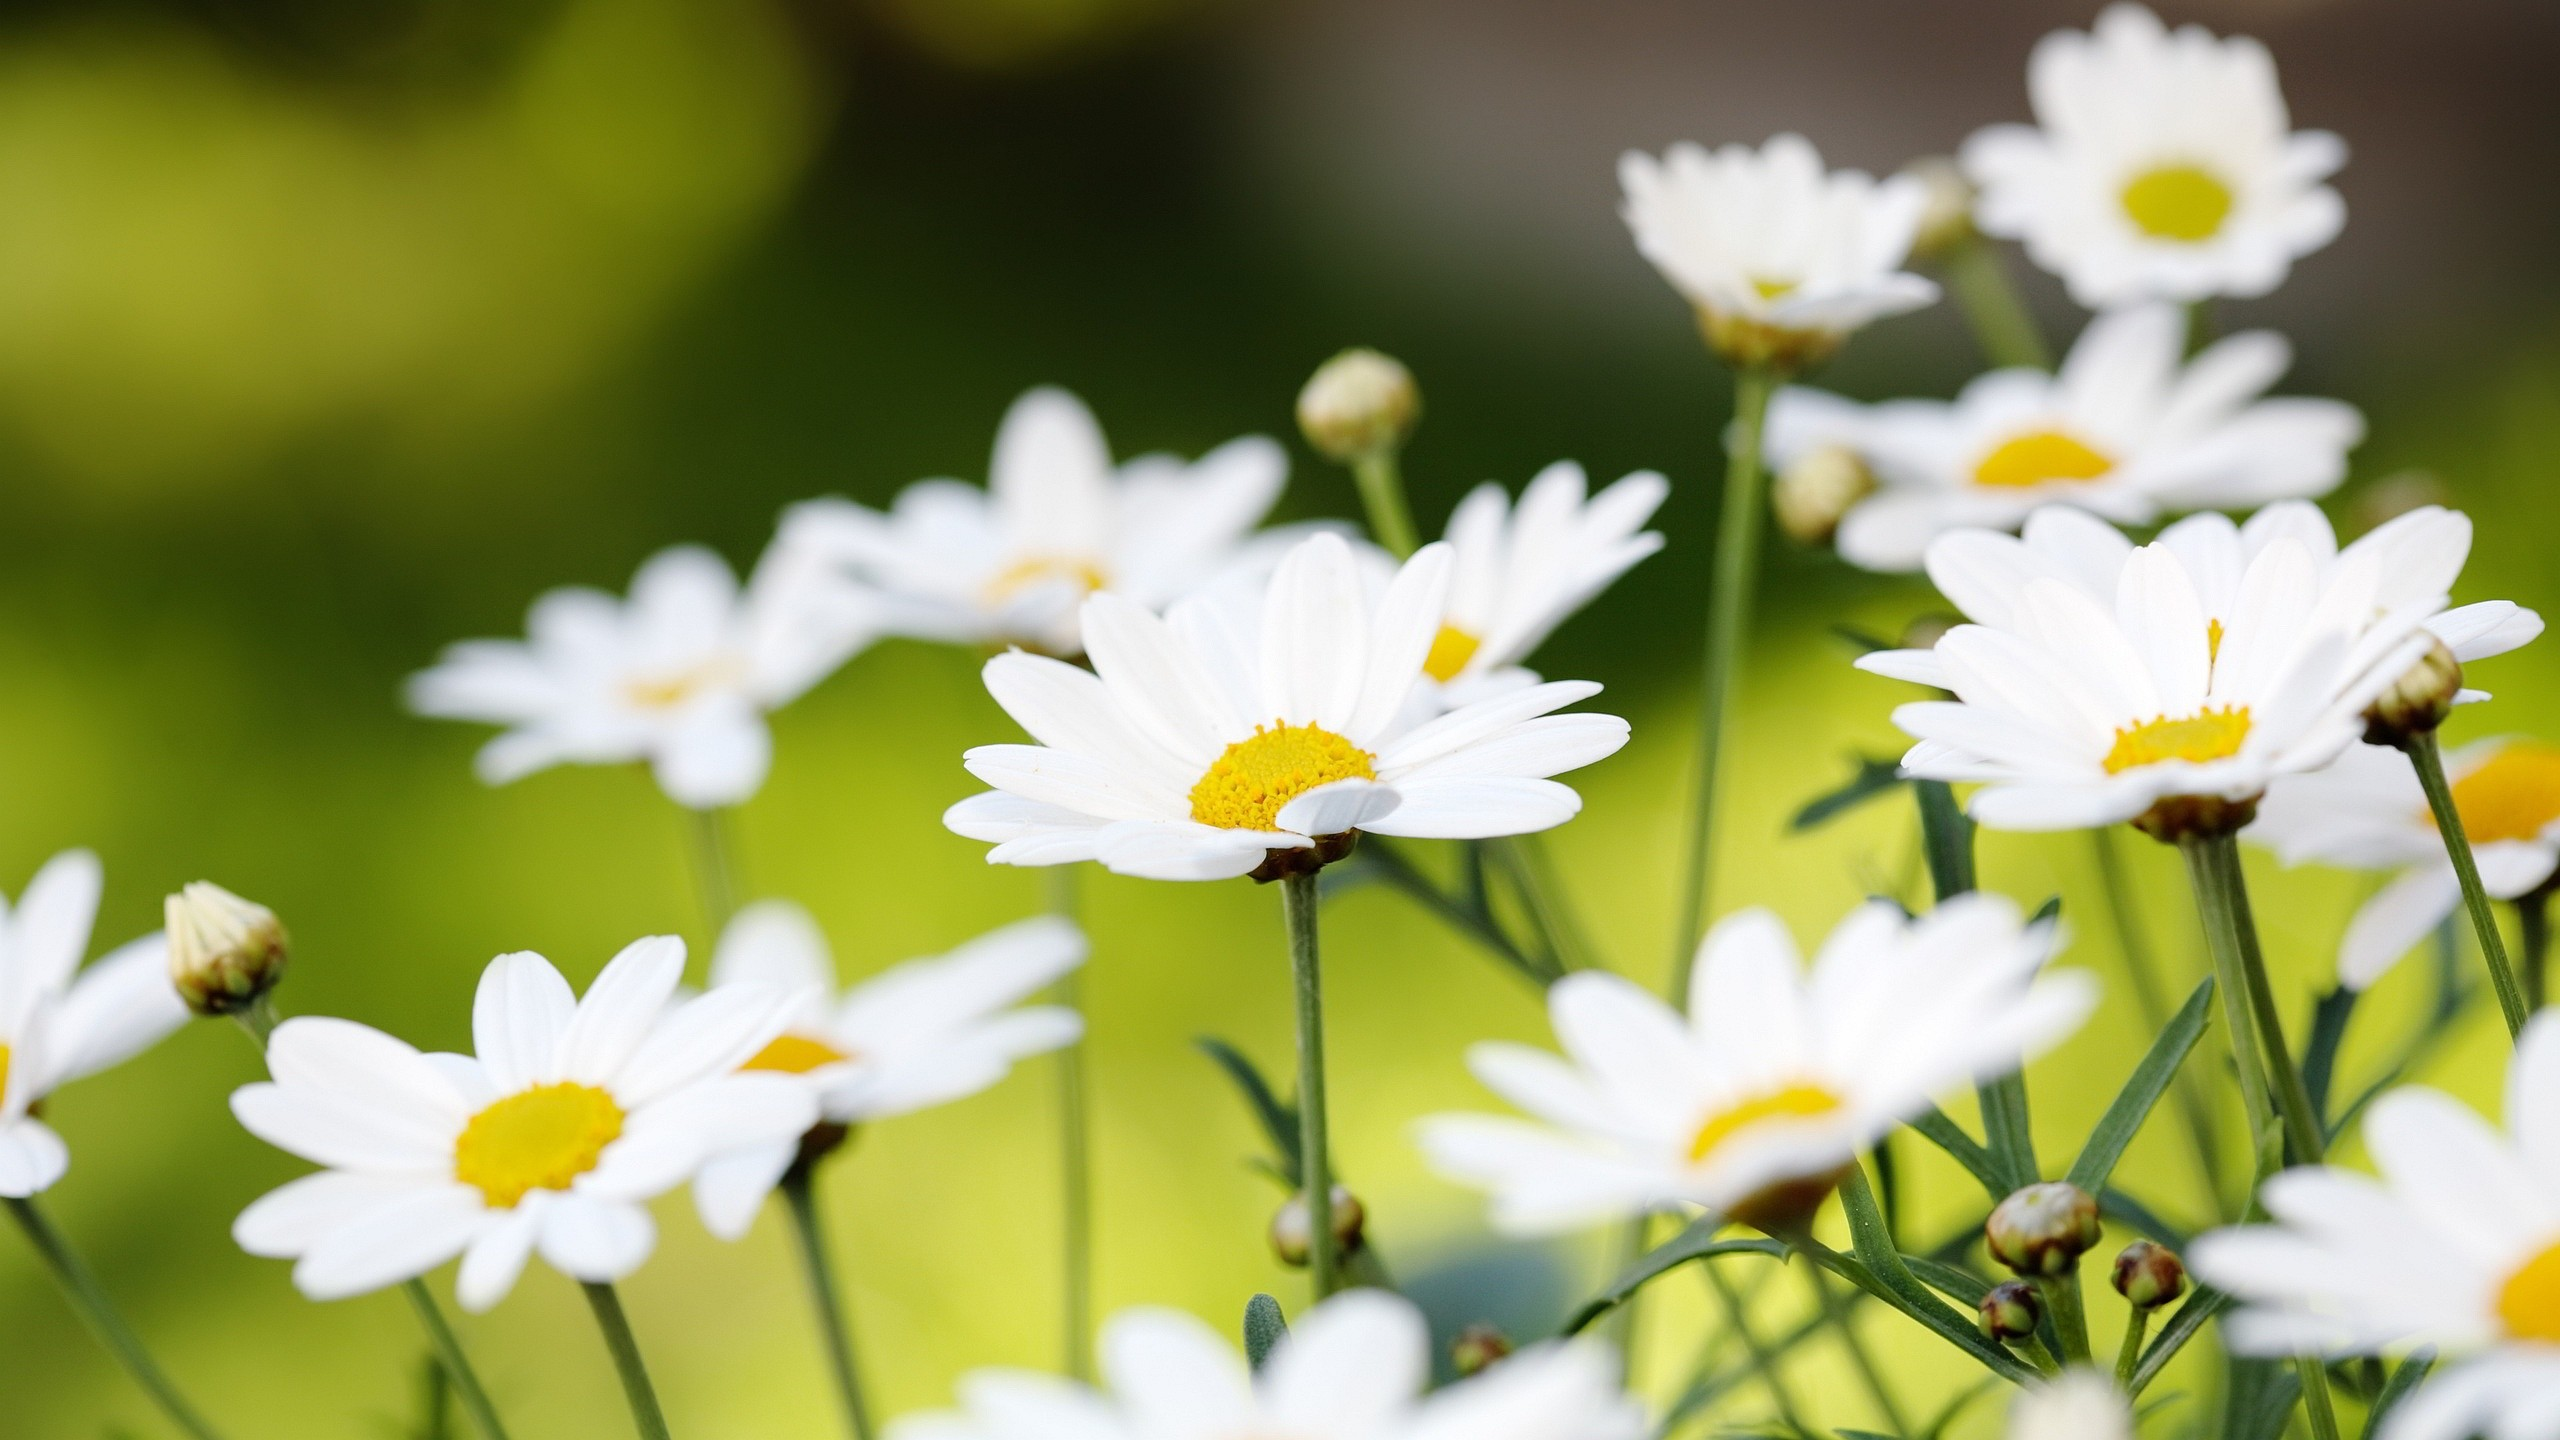 Daisy Flower Wallpaper (57+ images)